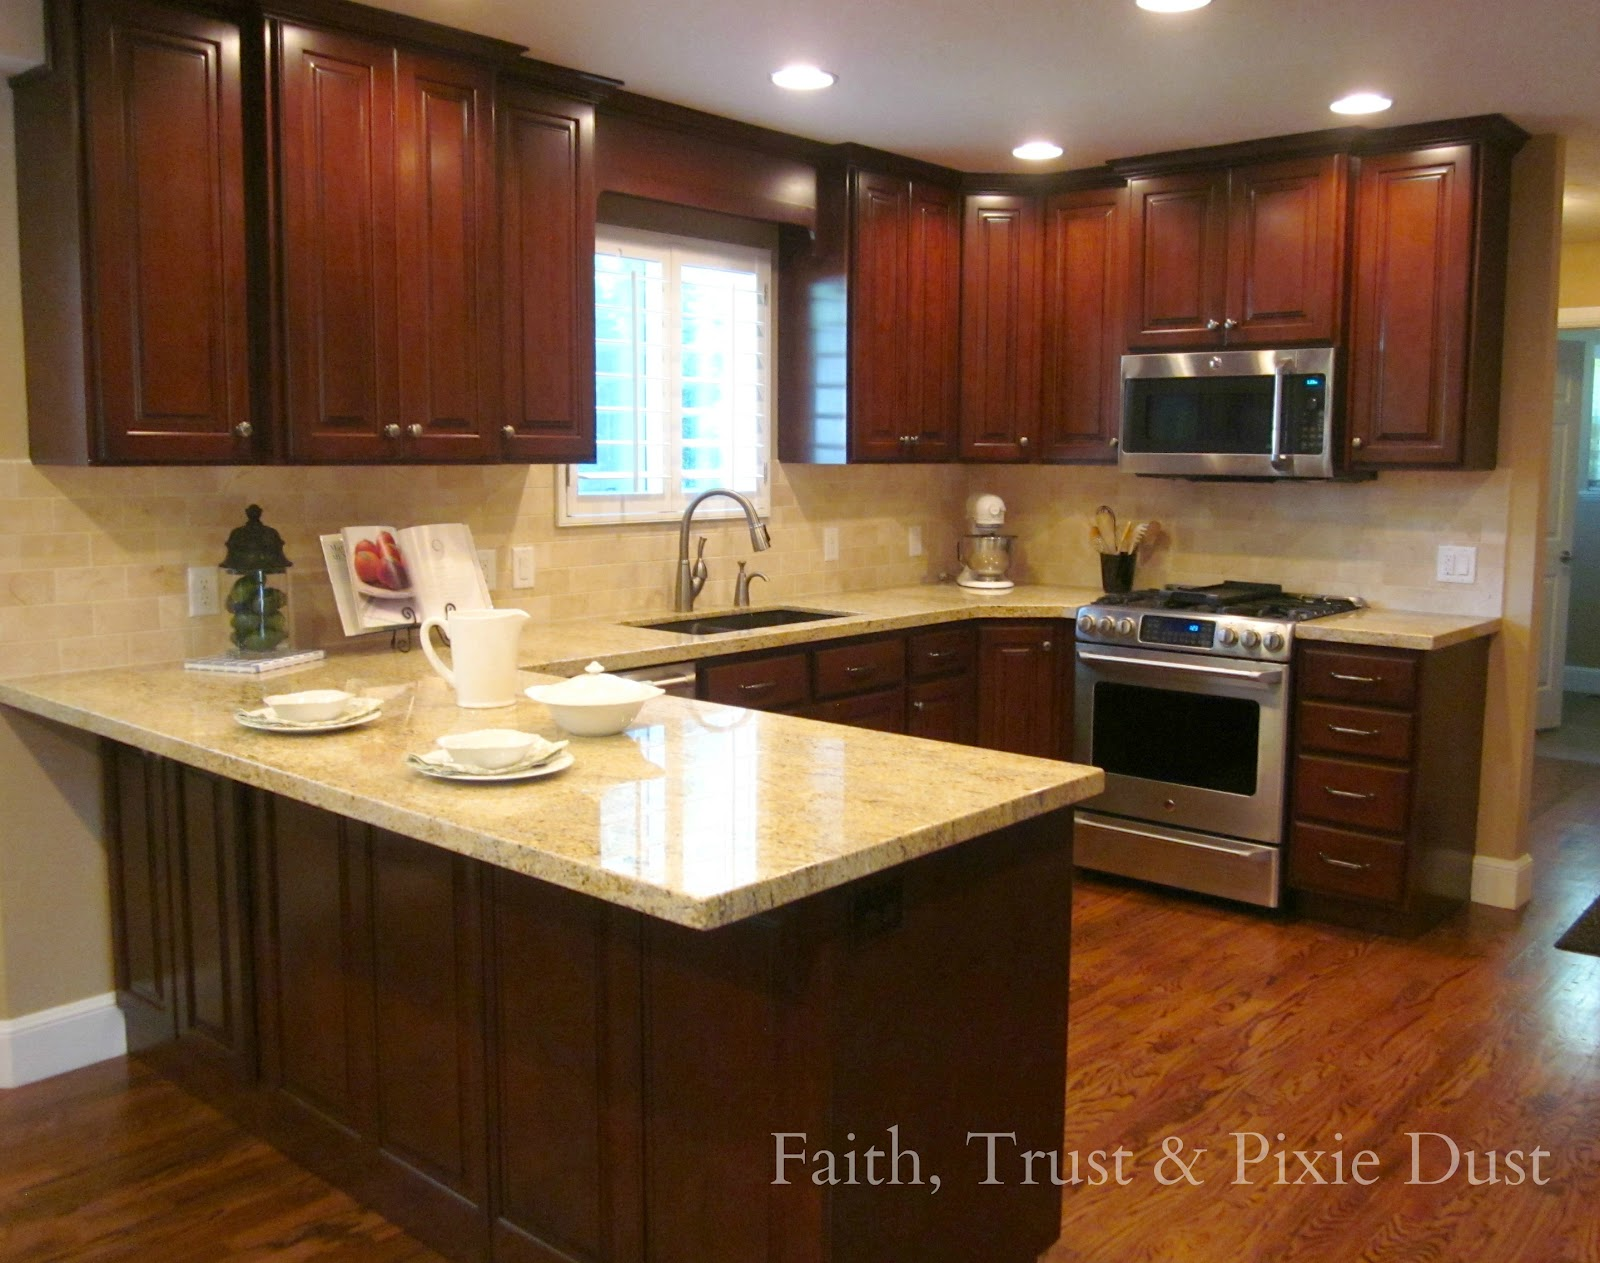 Honey I 39 M Home A Spectacular Kitchen Remodel: redo my kitchen